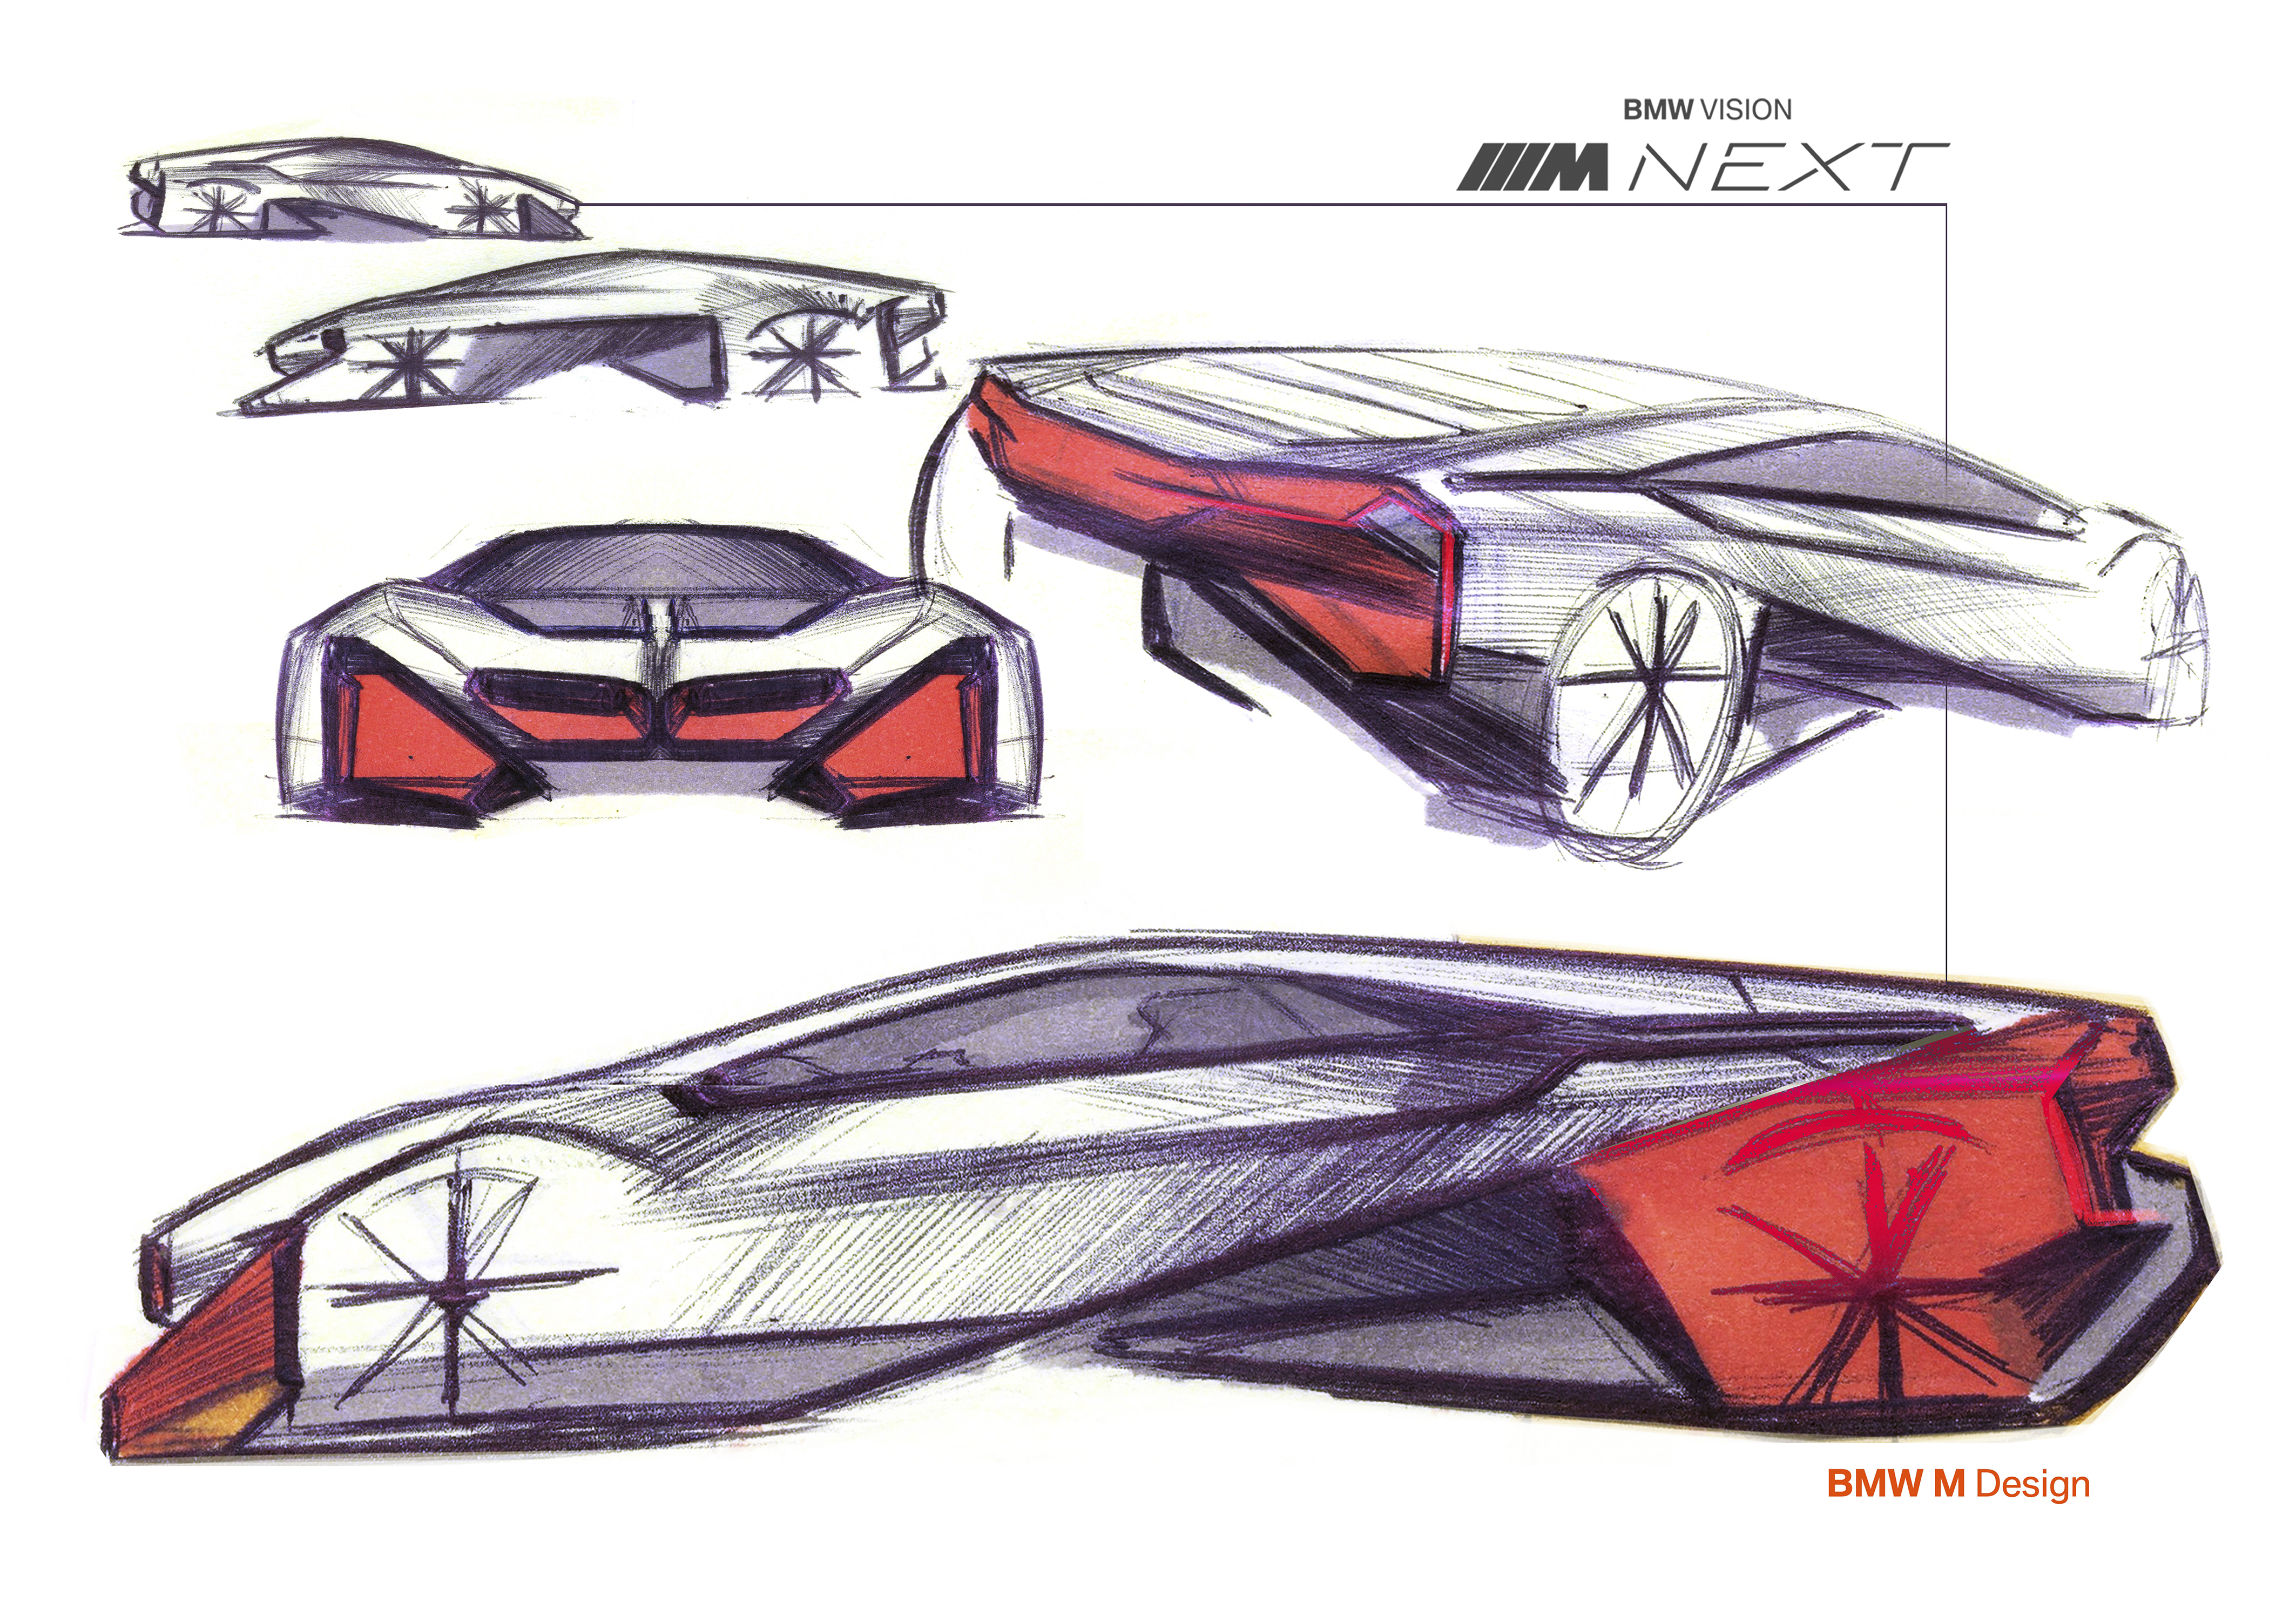 Bmw S New Concept Car Vision M Next Doesn T Forget The Thrill Seekers